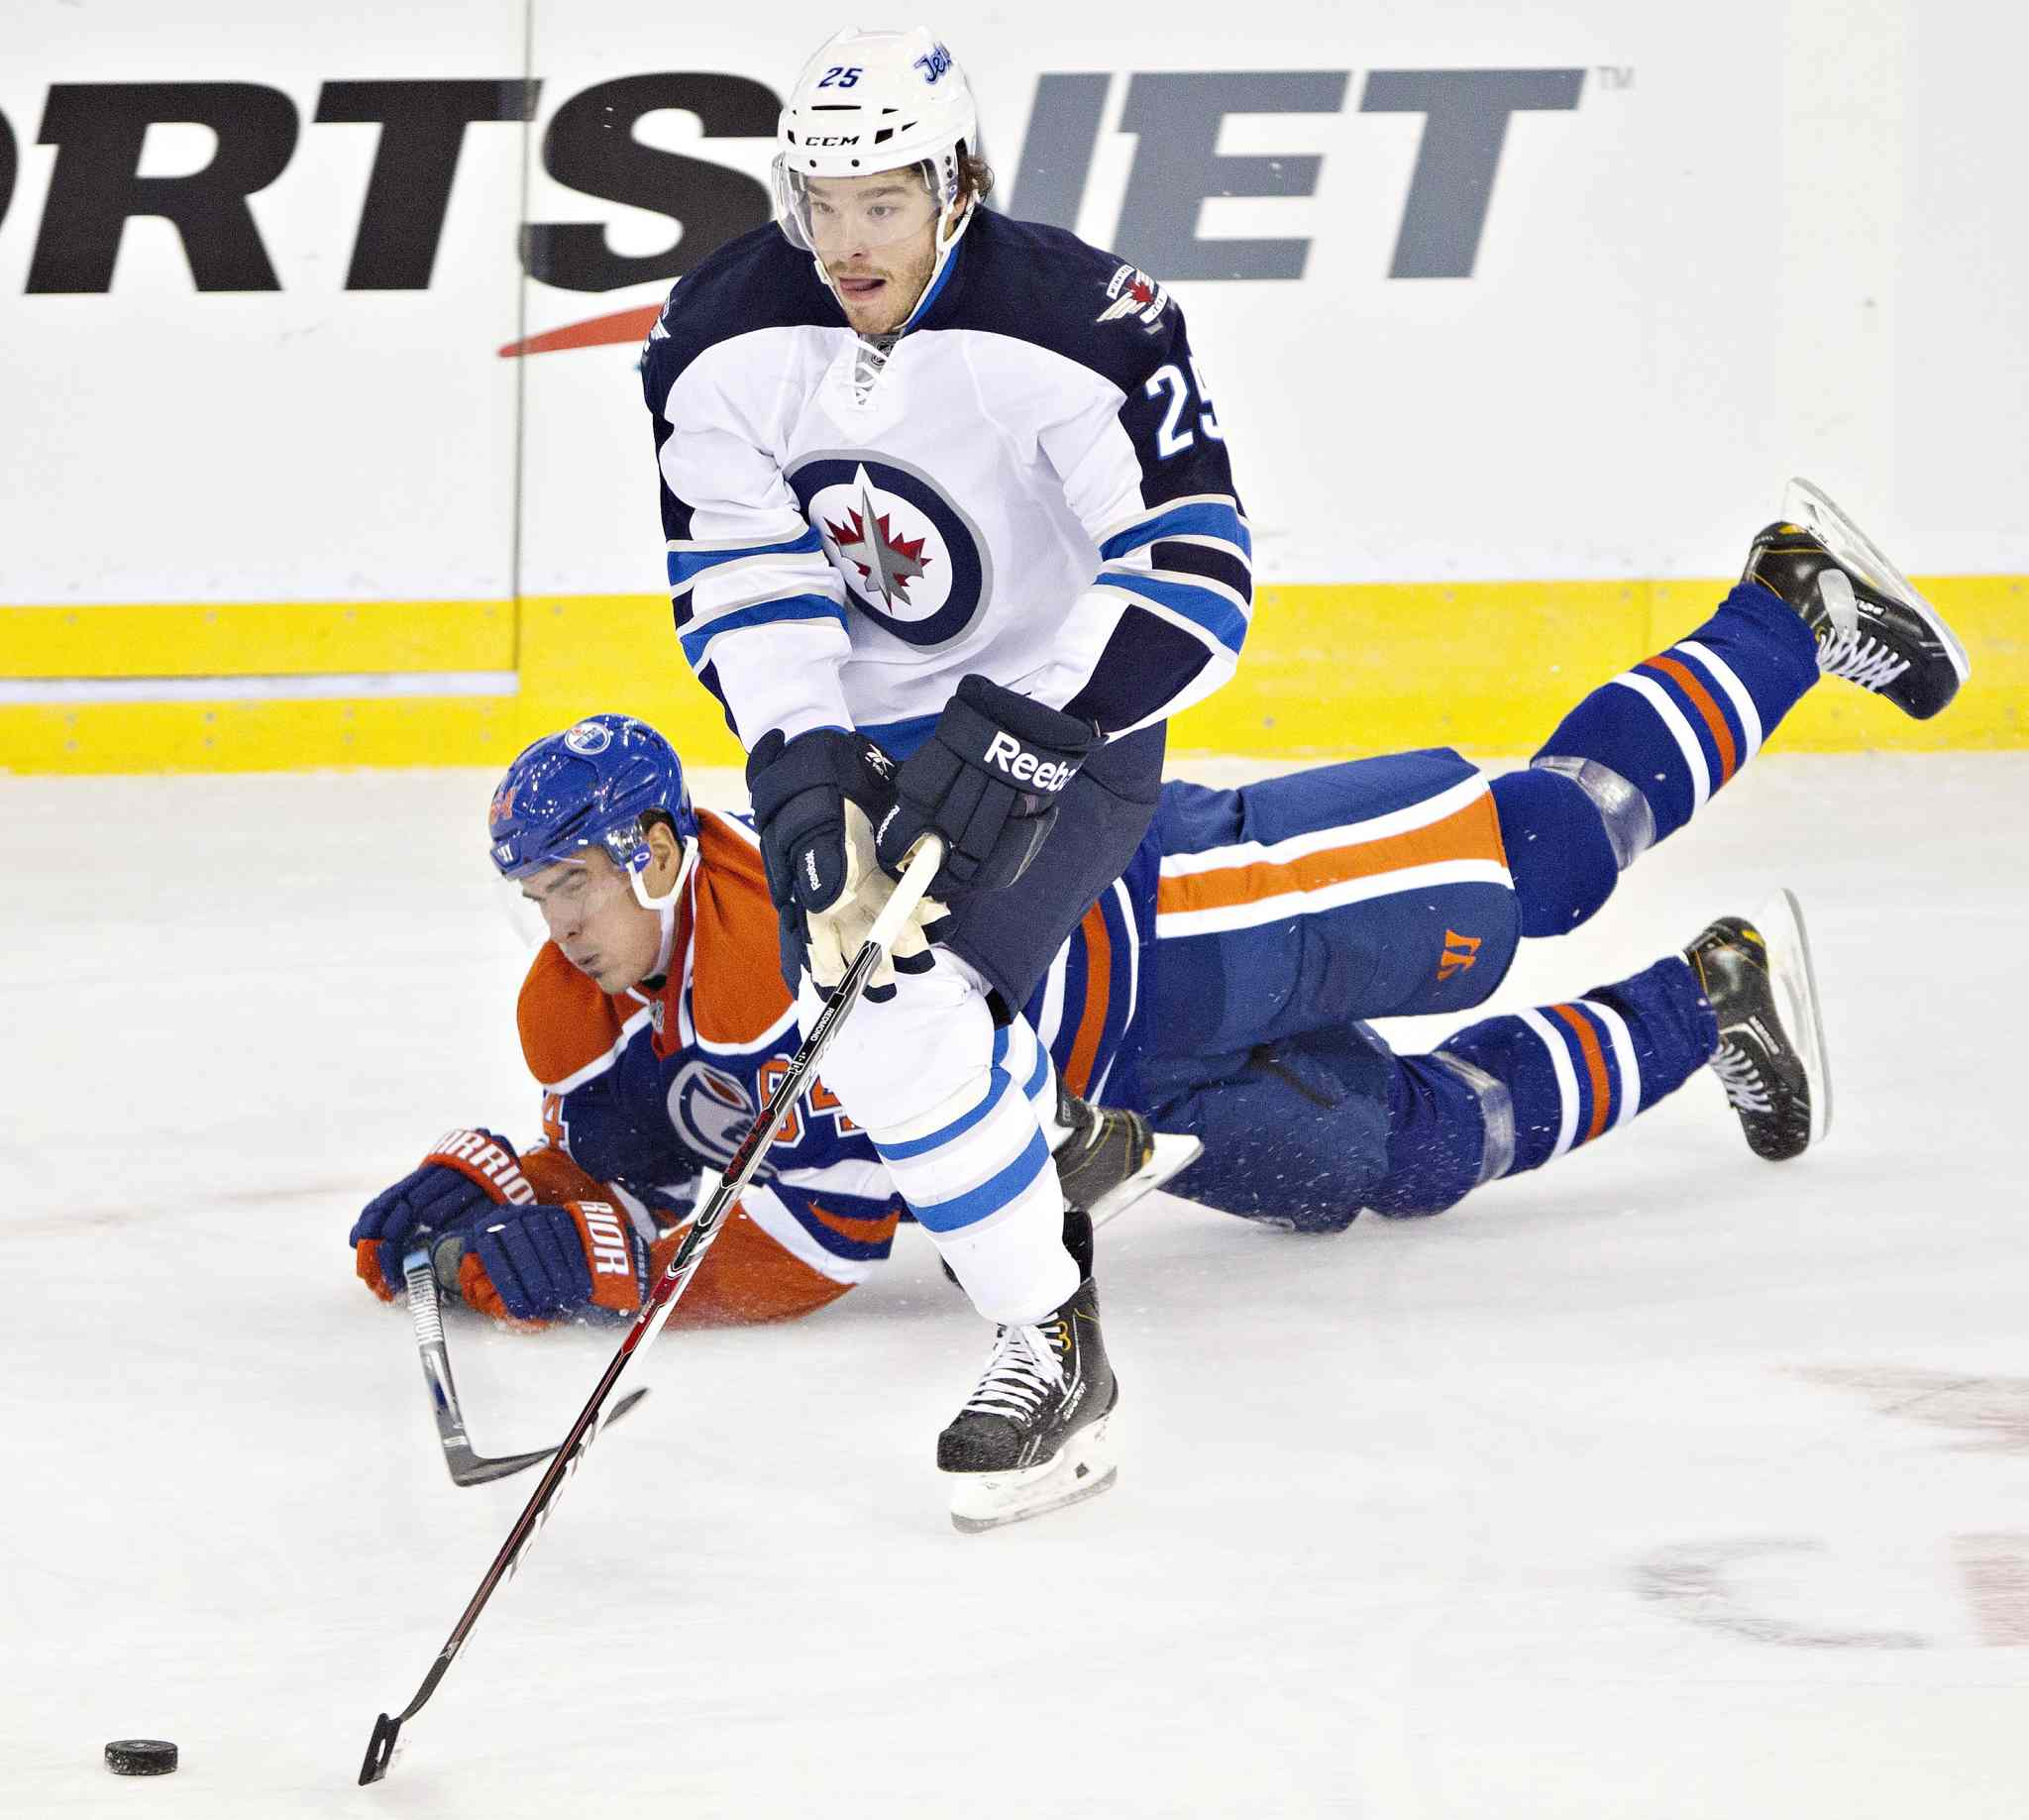 Zach Redmond (25) checks Nail Yakupov of the Edmonton Oilers during the second period.